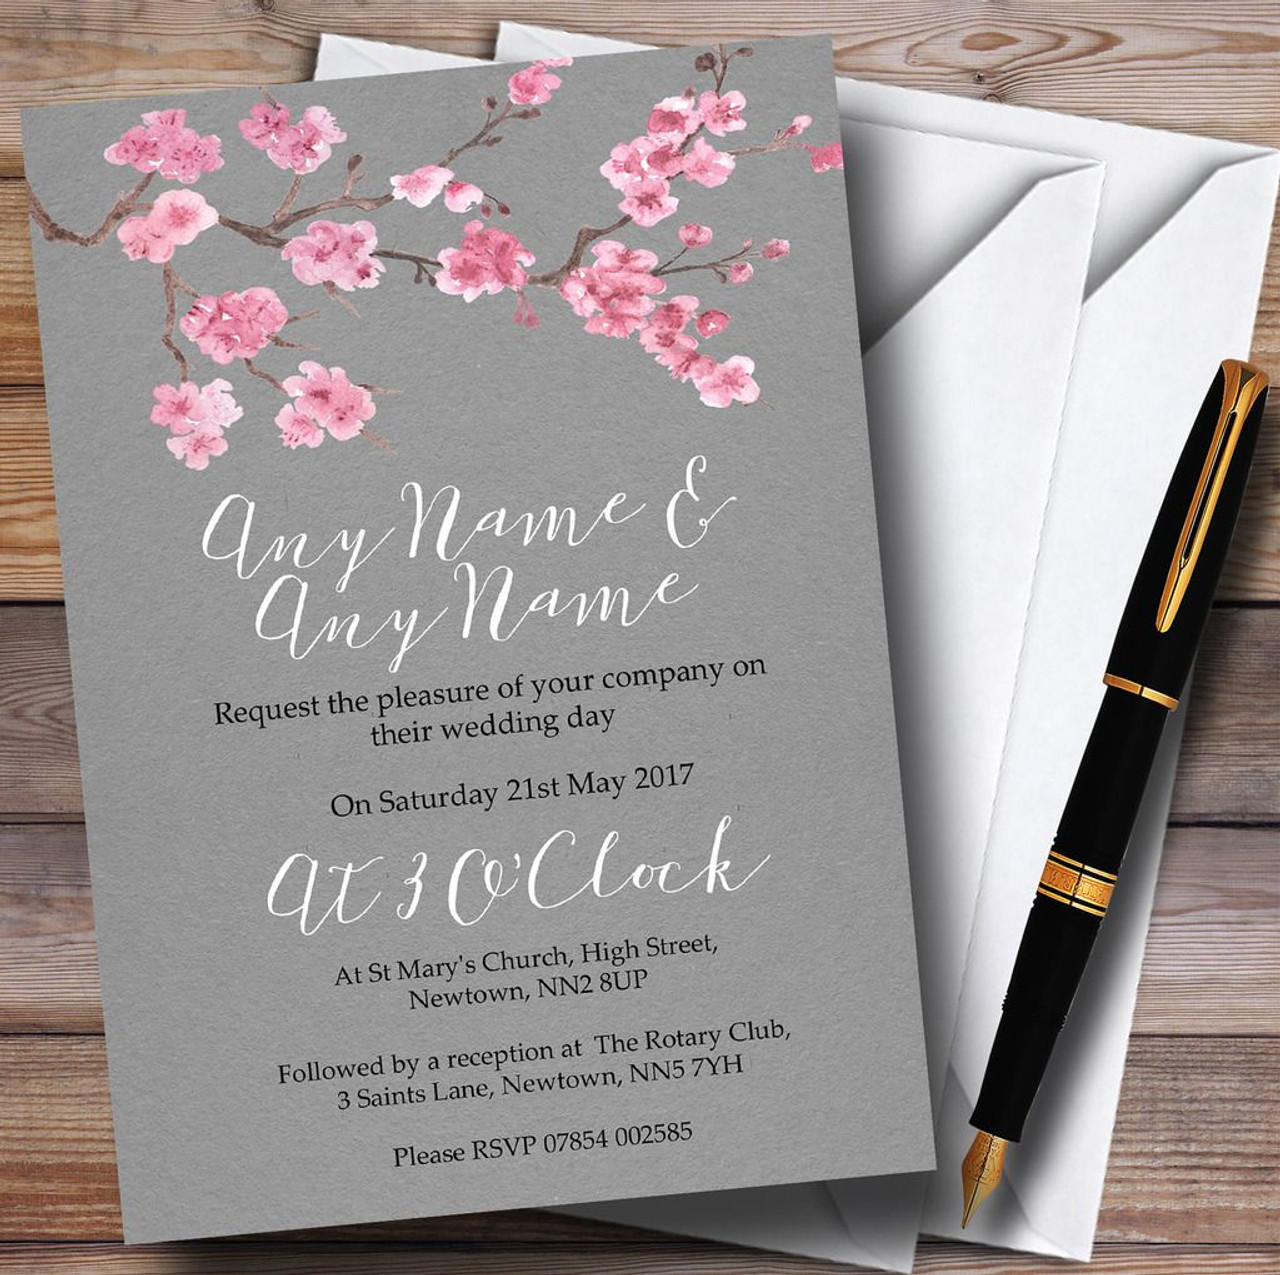 wedding invitations east london south africa%0A Rustic Vintage Dark Grey Pink Blossom Personalised Wedding